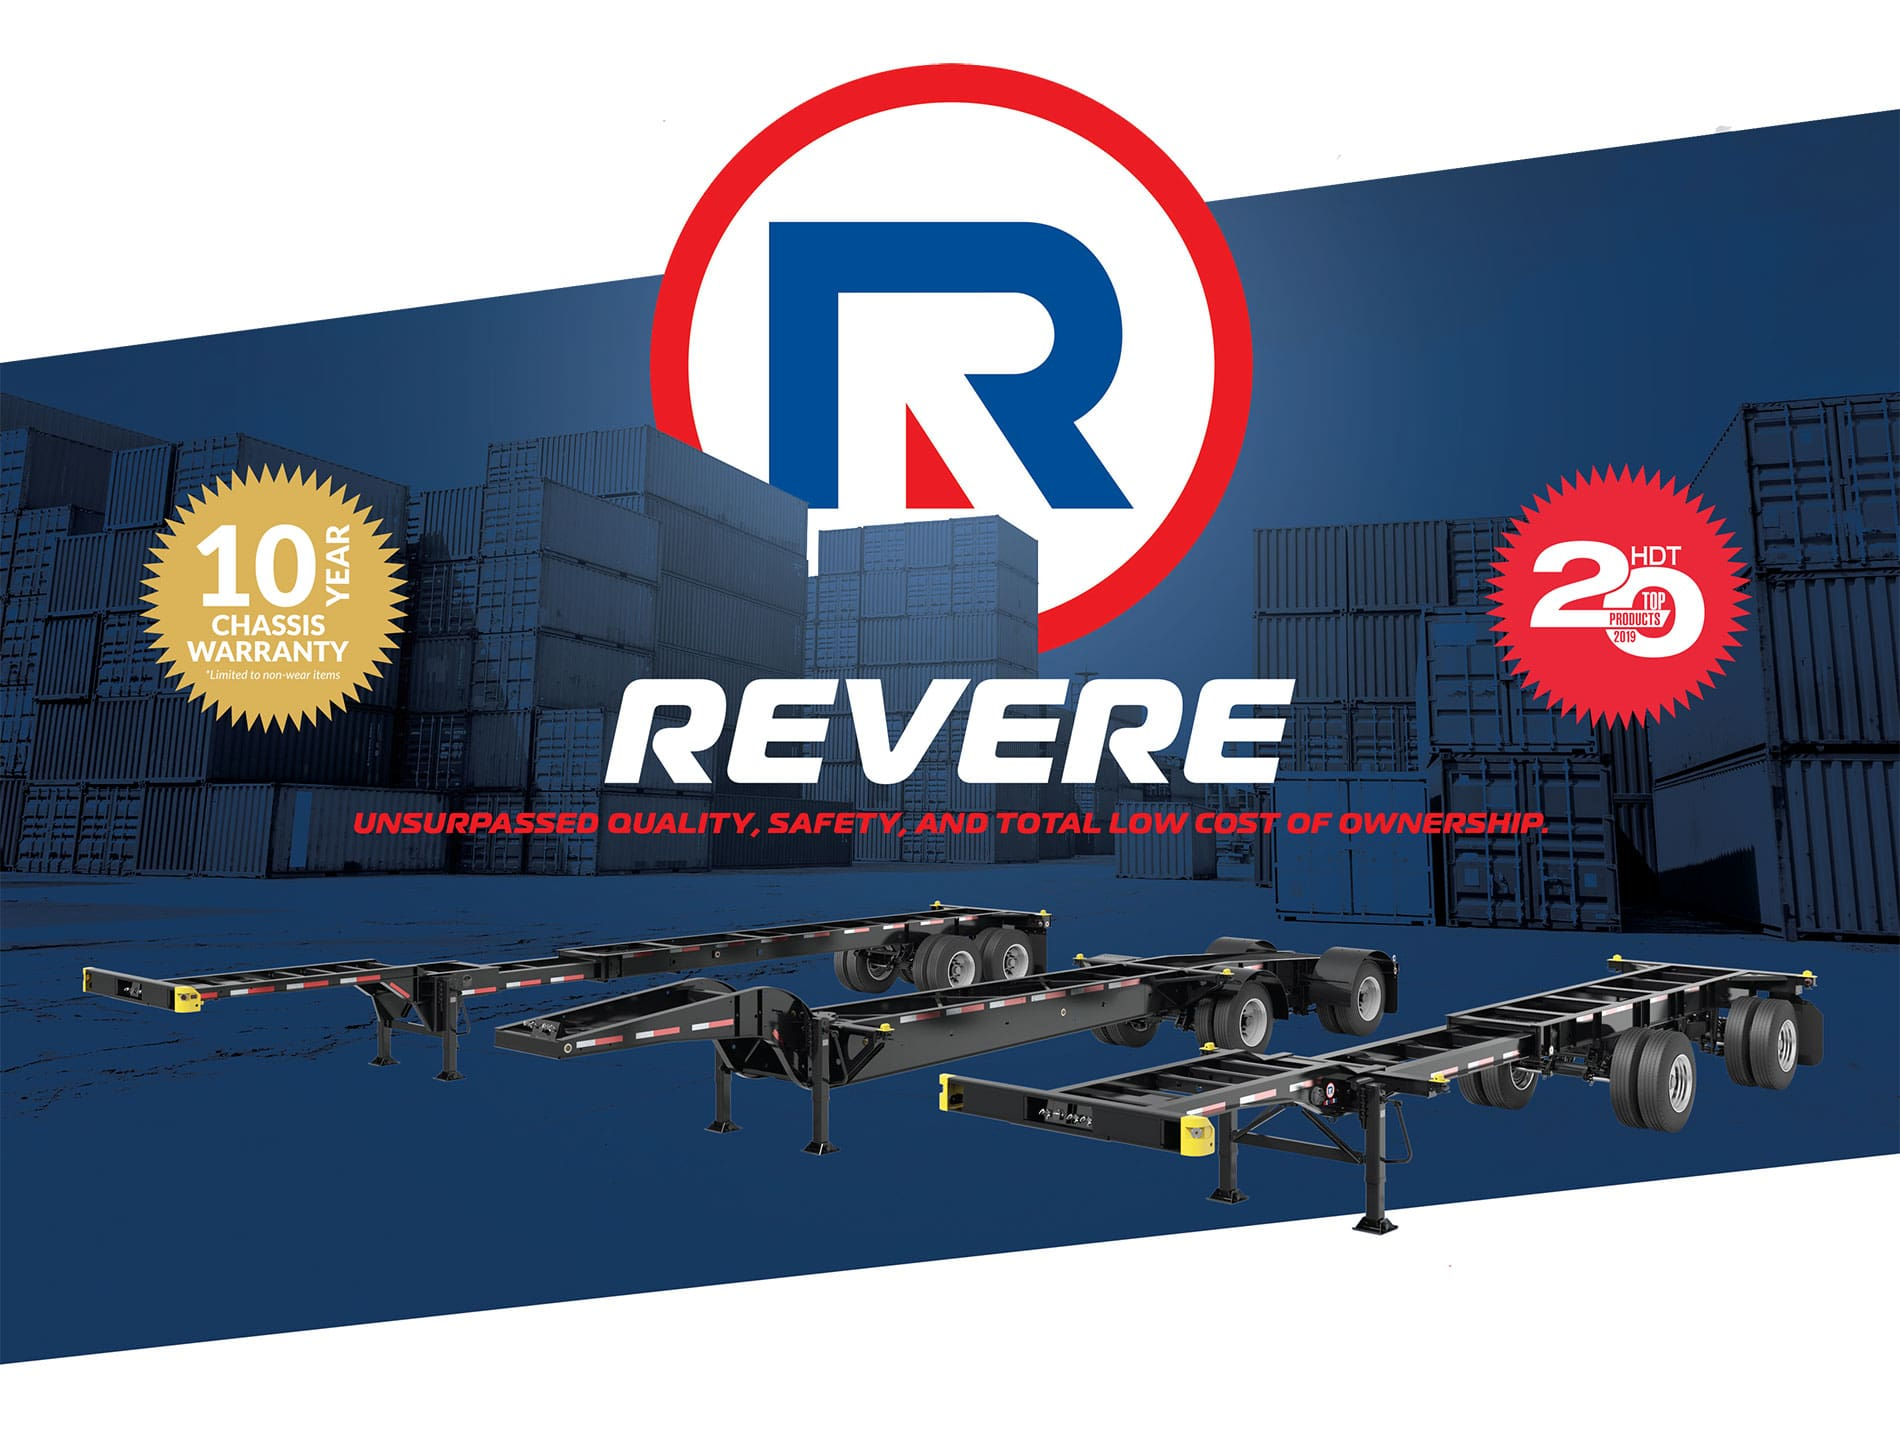 Revere Container Chassis